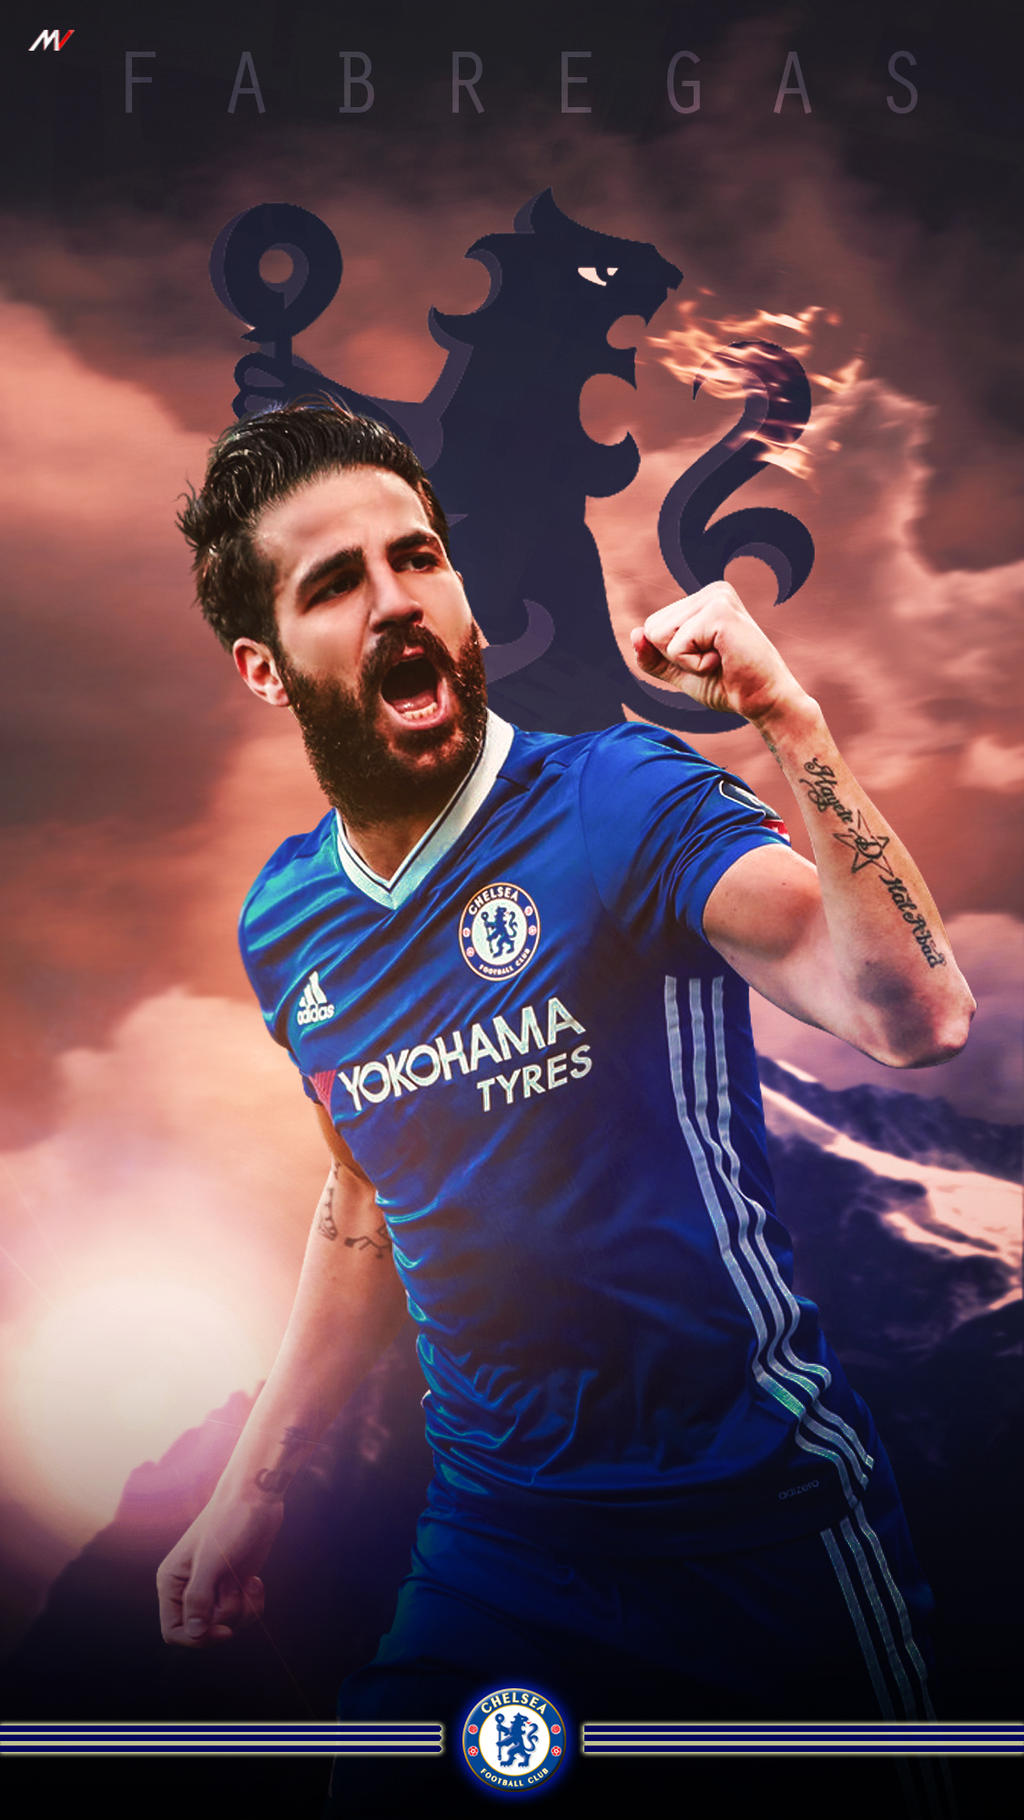 2020 other | images: fabregas wallpaper 2017